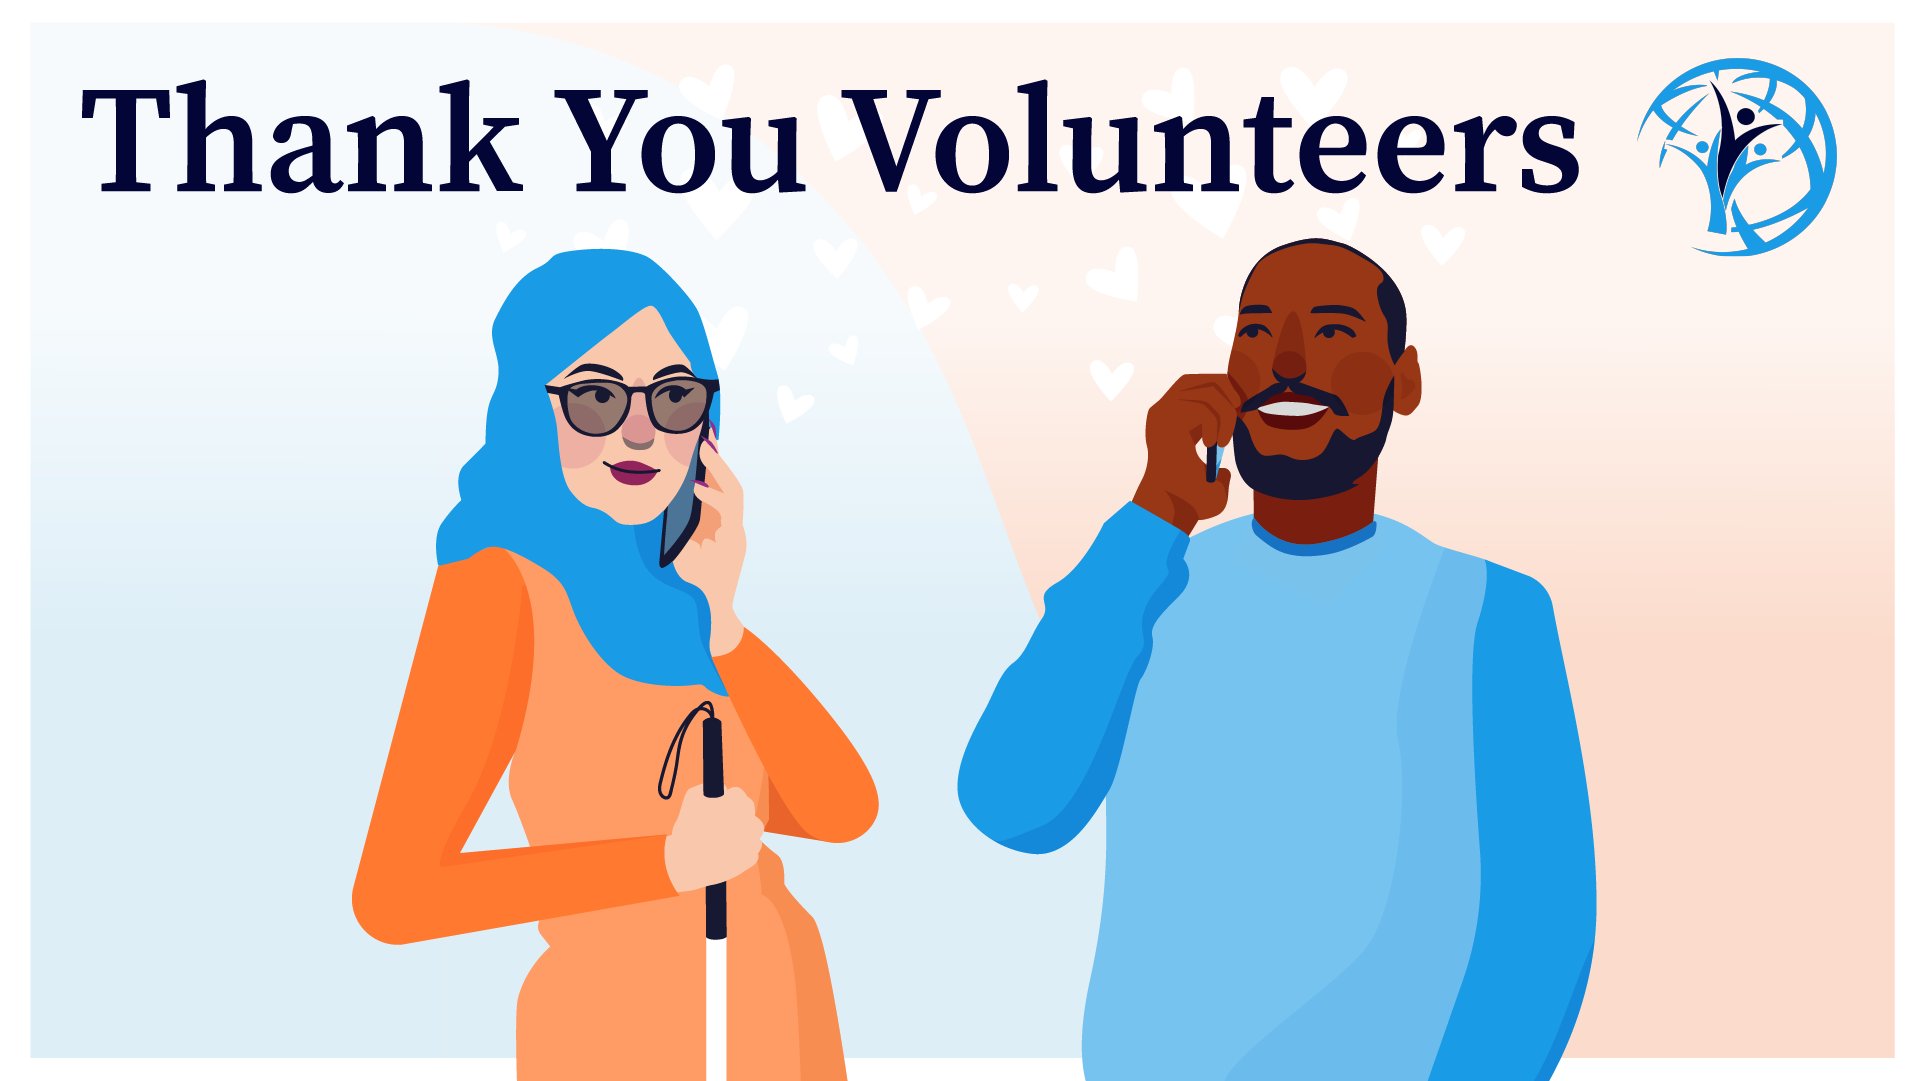 Image is a Thank You message to the volunteers where Volunteer and VIP are chatting over phone